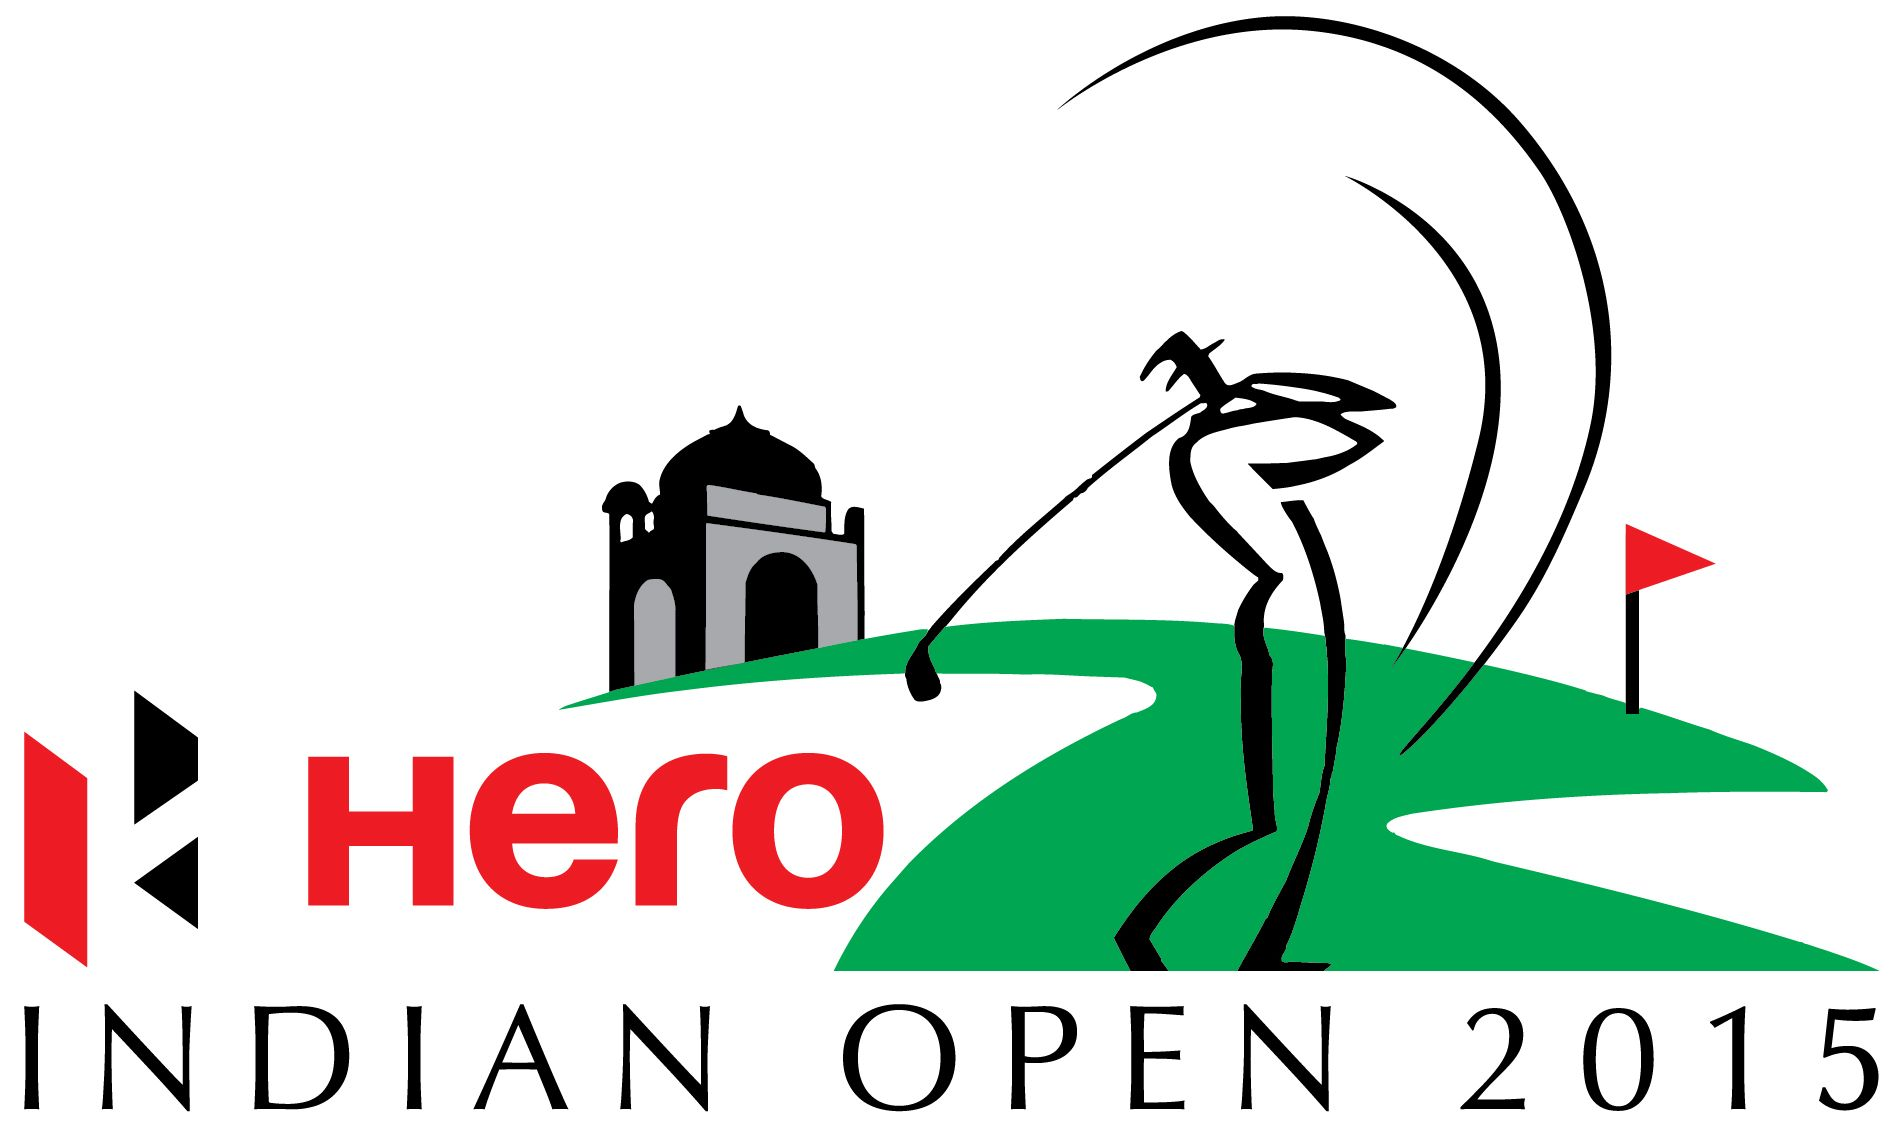 Hero Indian Open 2015 Prize Money.